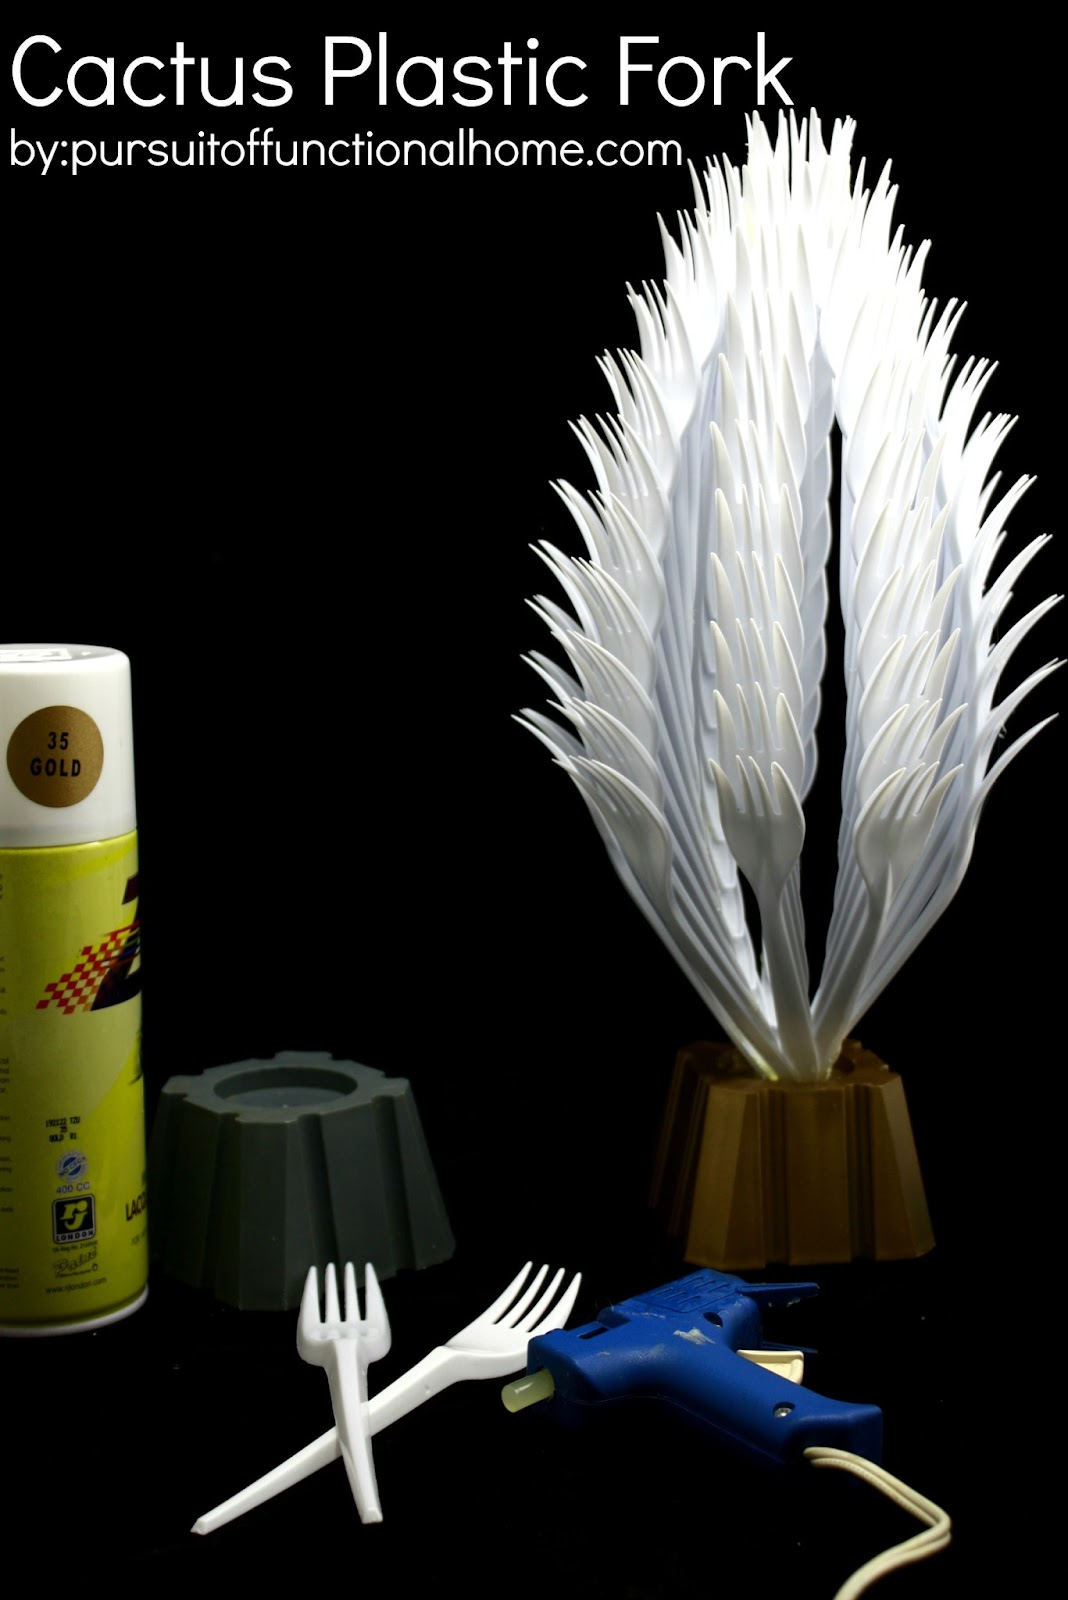 Diy home decor cactus plastic fork pursuit of for Crafts with plastic spoons and forks